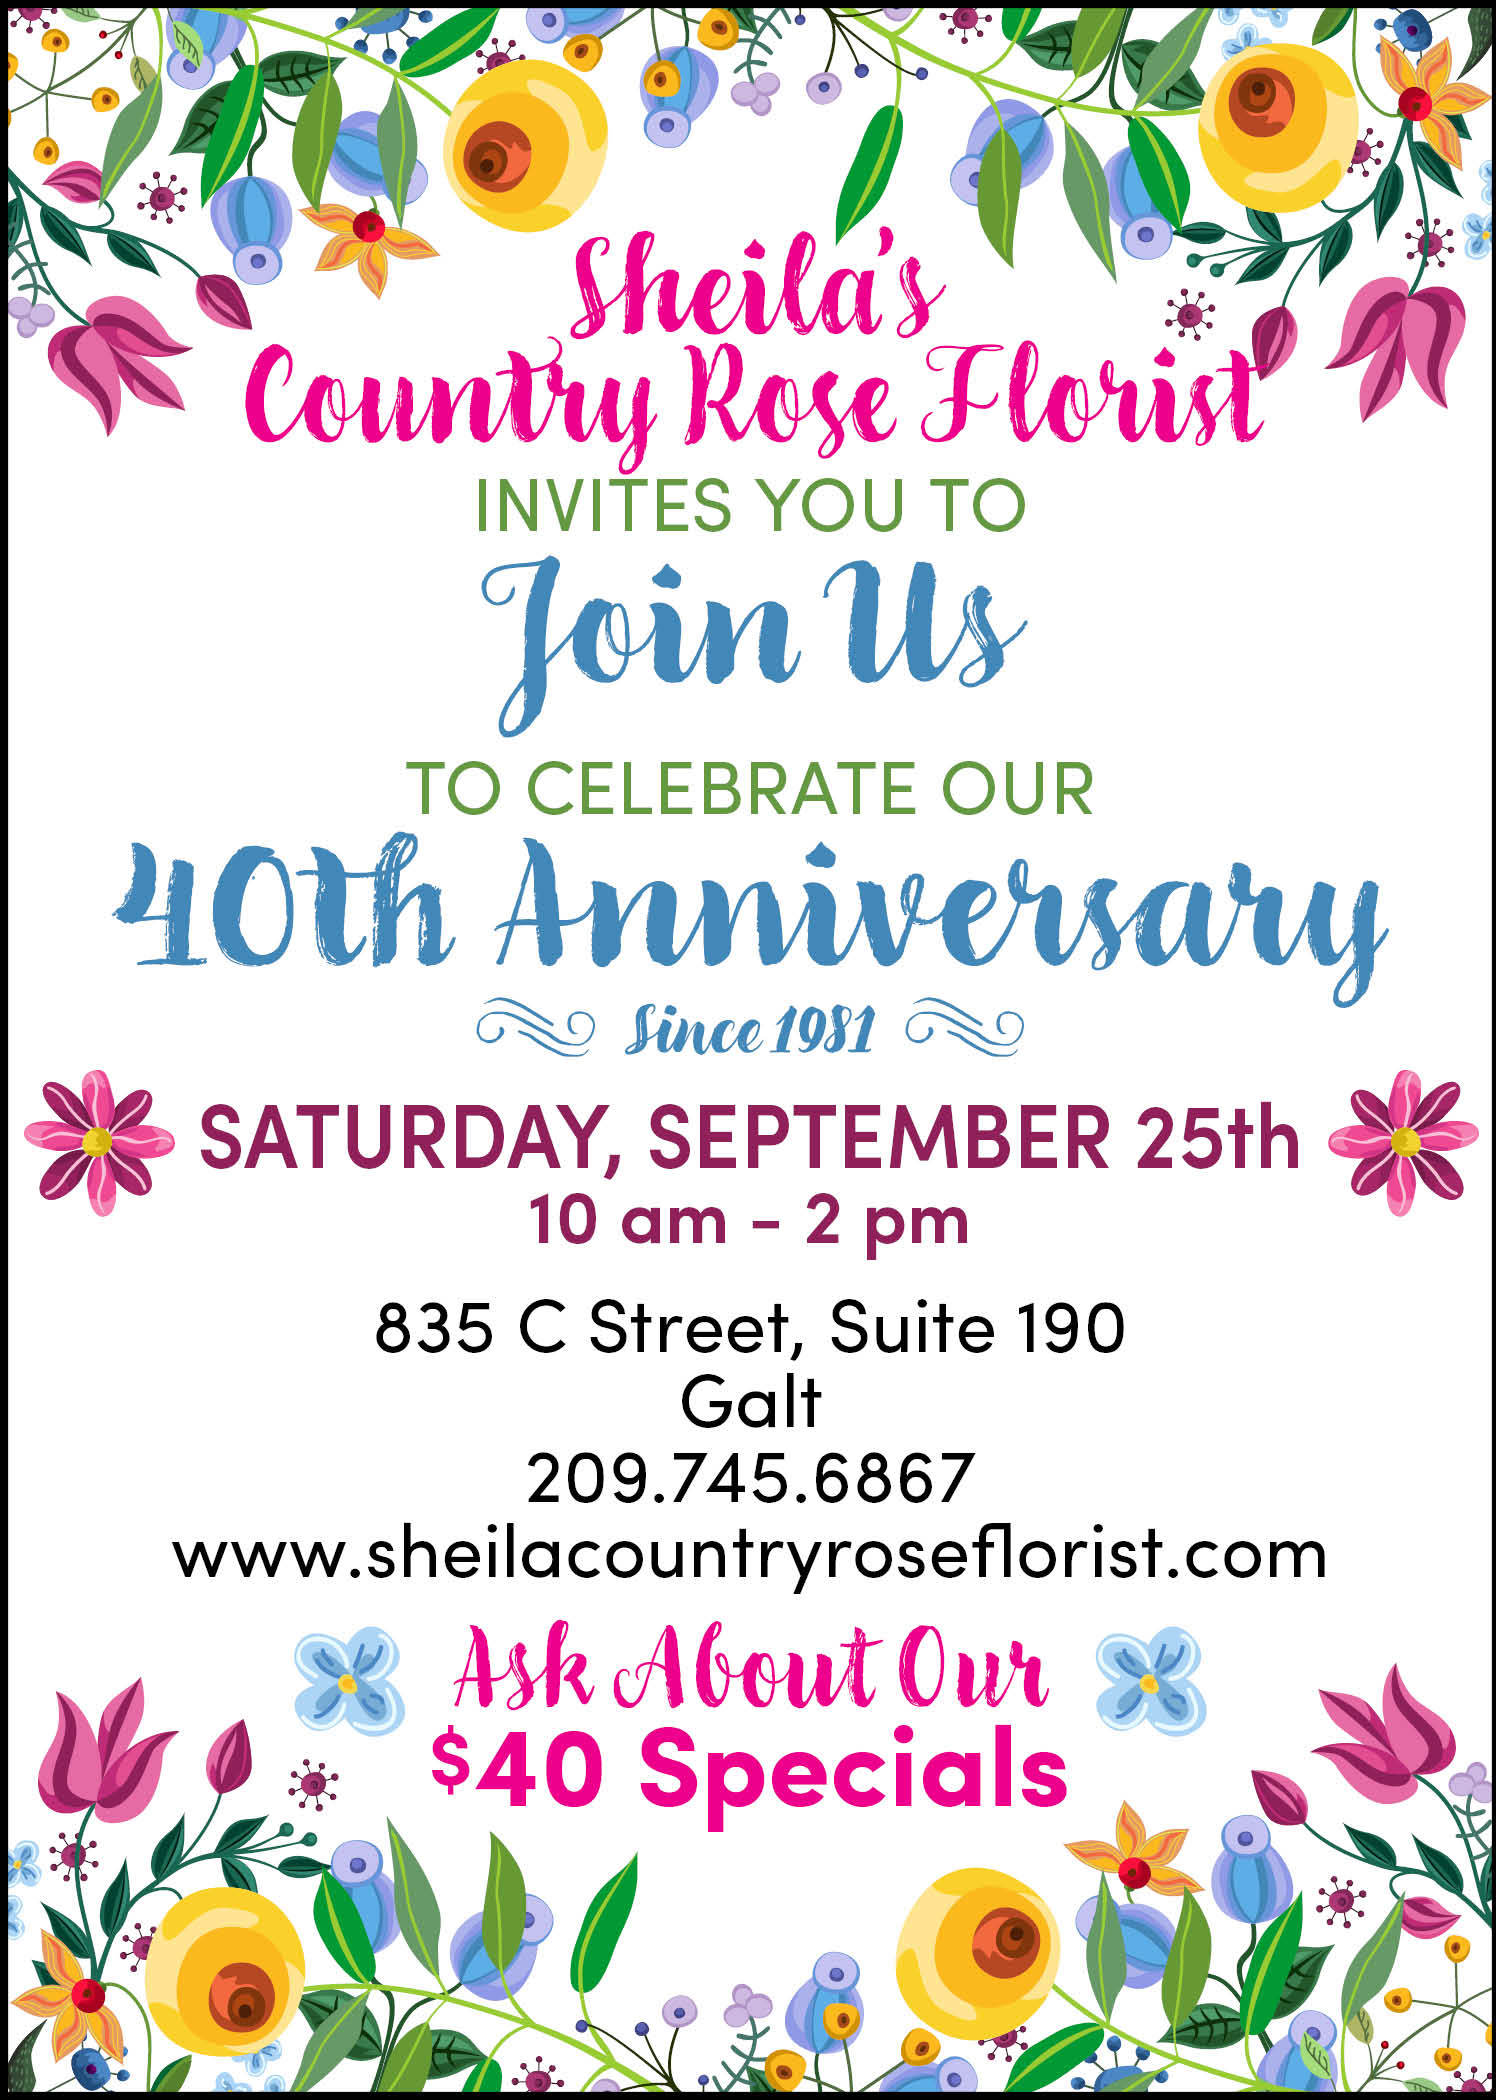 Sheila's Country Rose Florist 40th Anniversary flier. Sat., Sept 25, 10 om to 2 pm, 835 C St, Galt